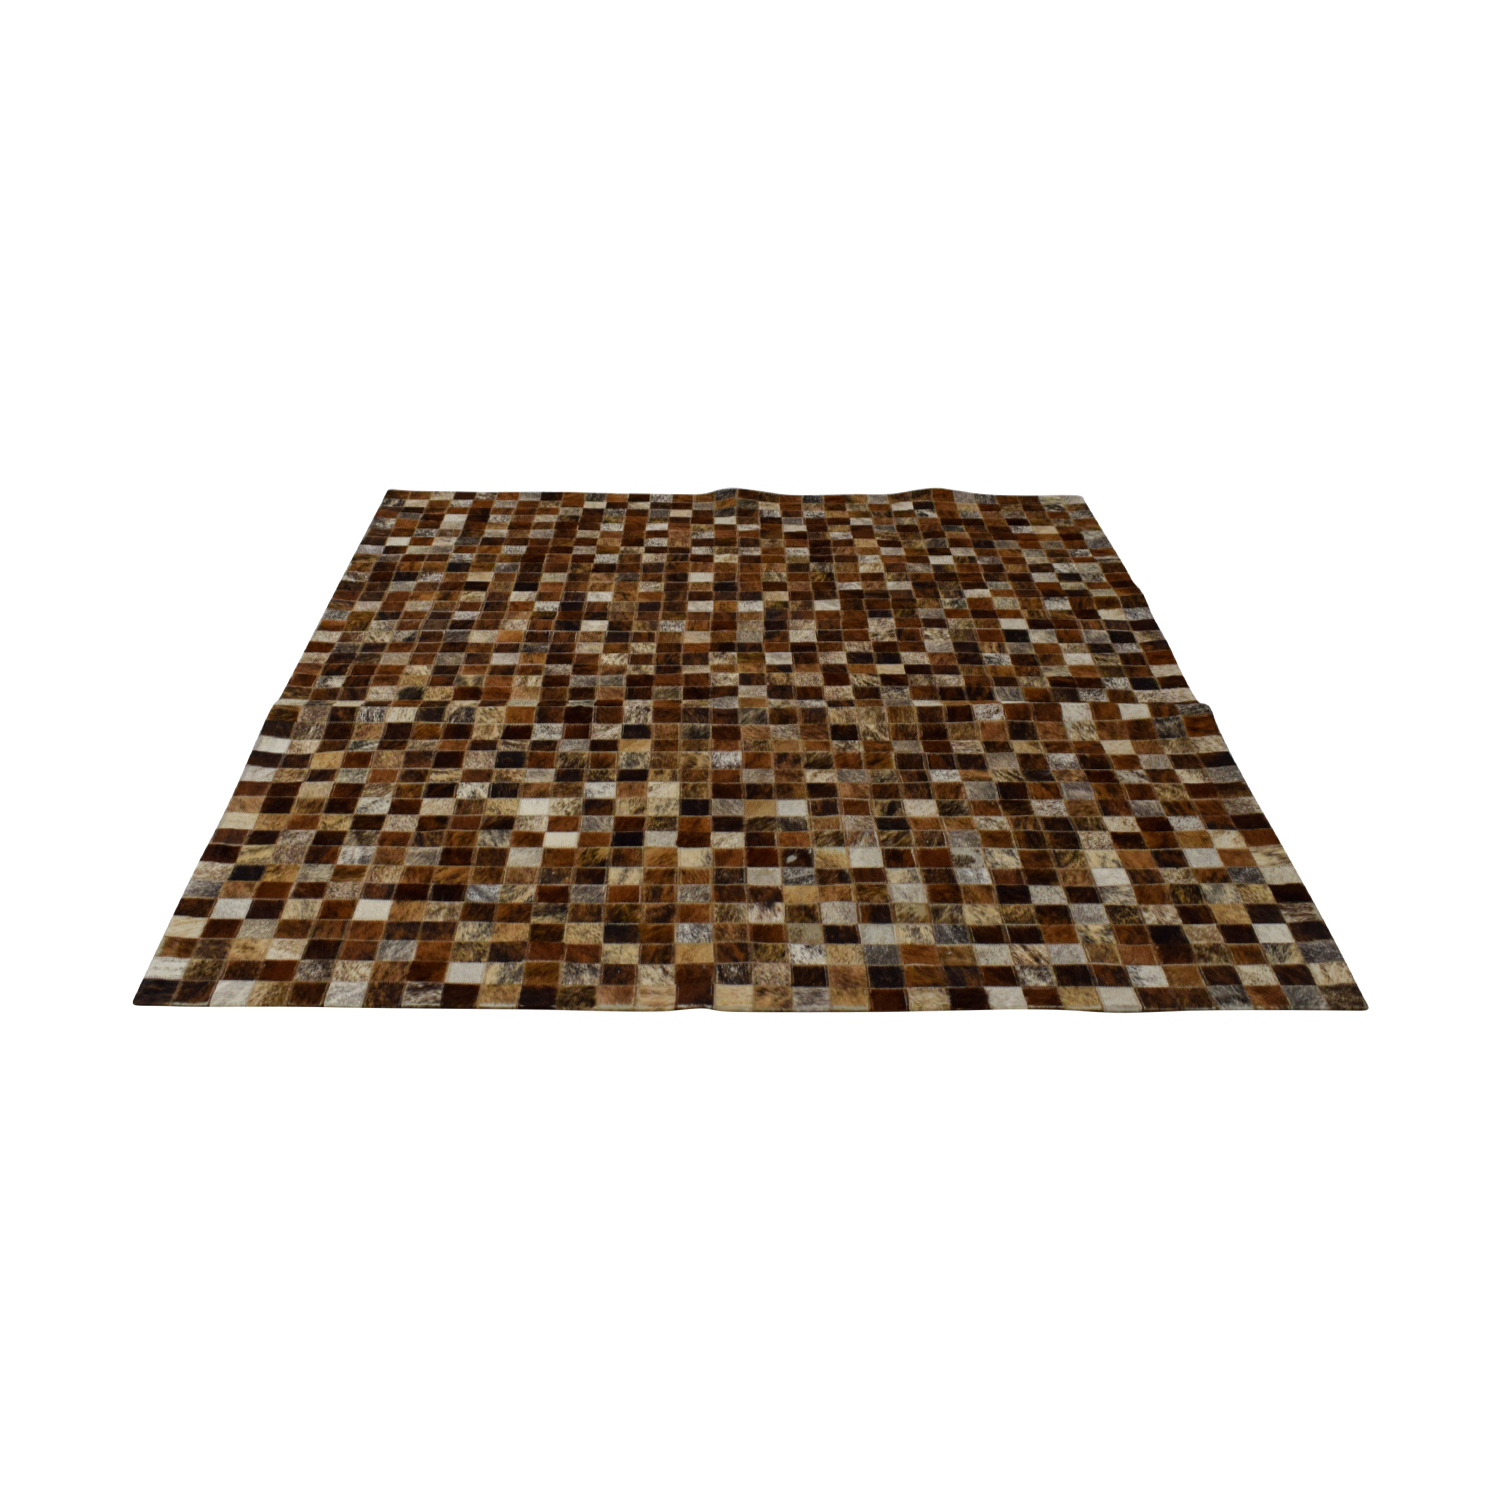 Pony Skin Leather Mosaic Carpet / Rugs